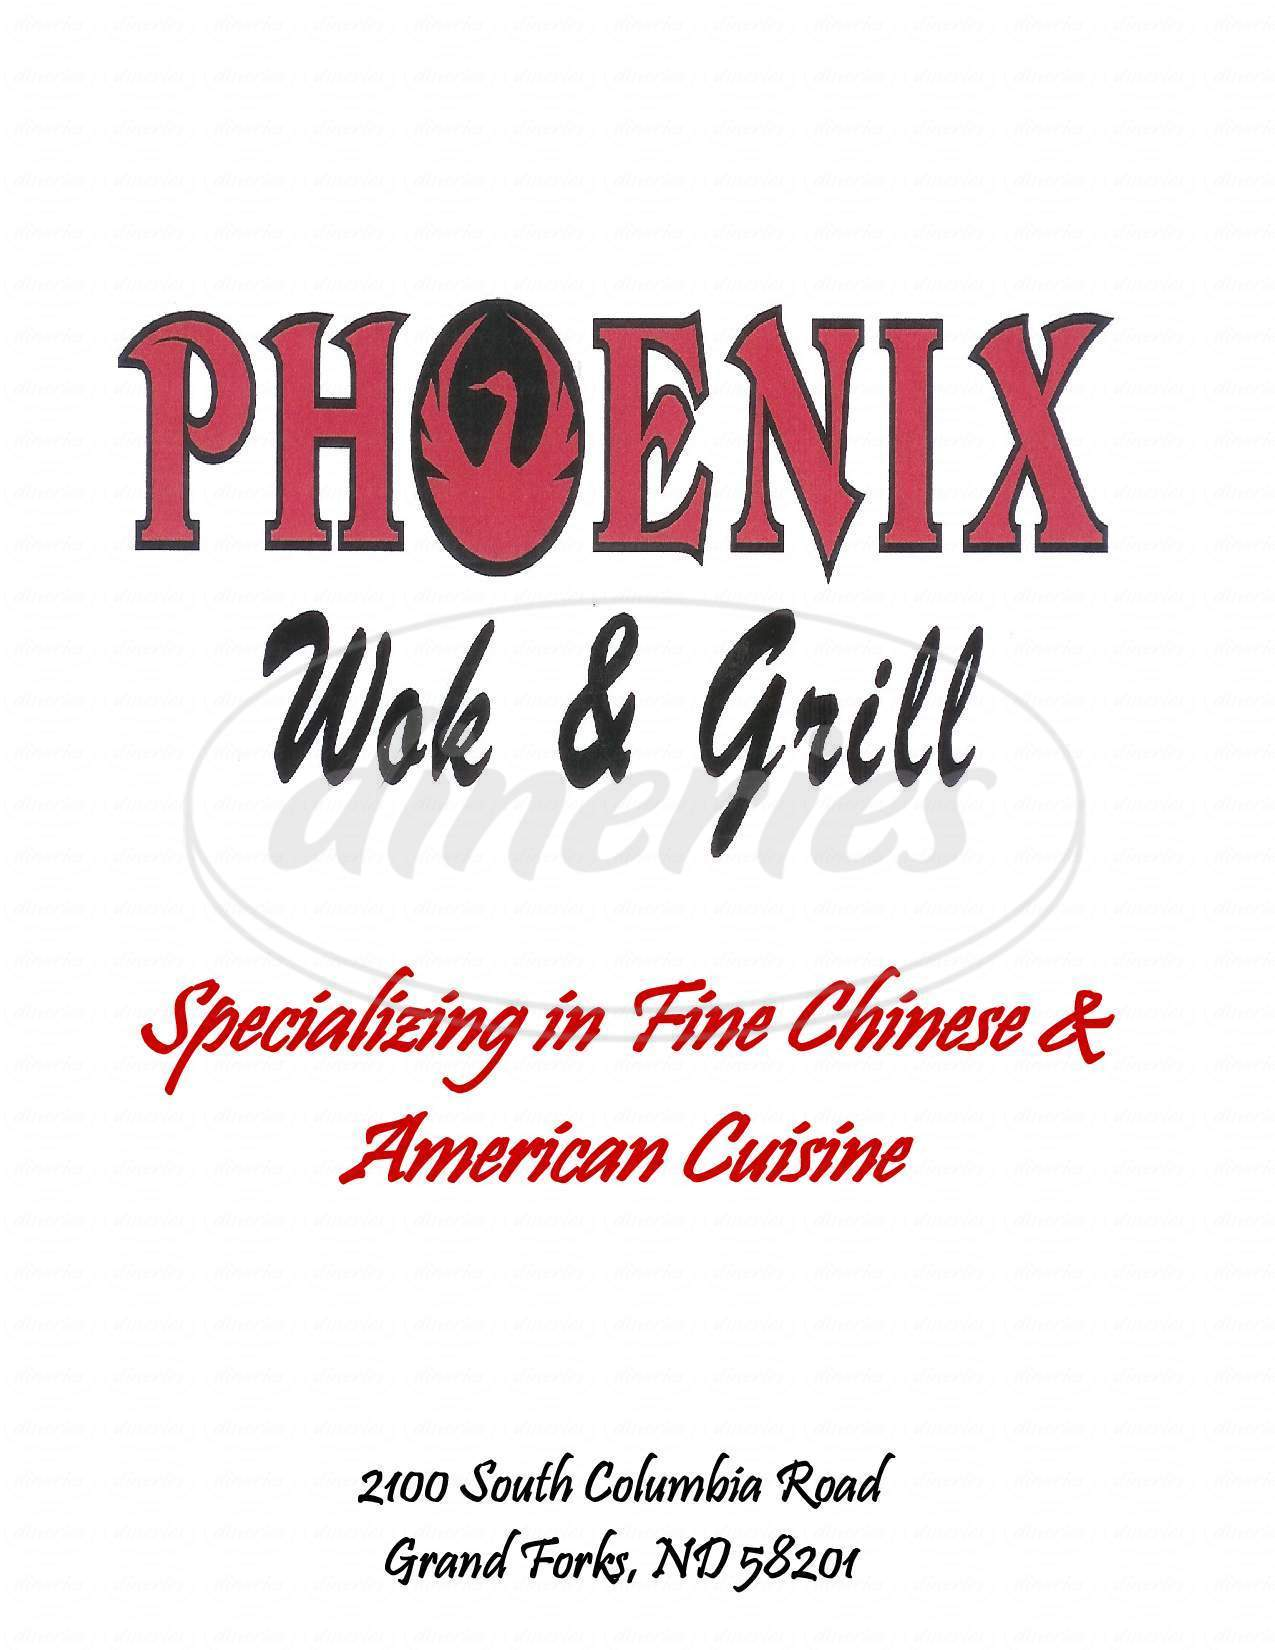 menu for Phoenix Wok Grill